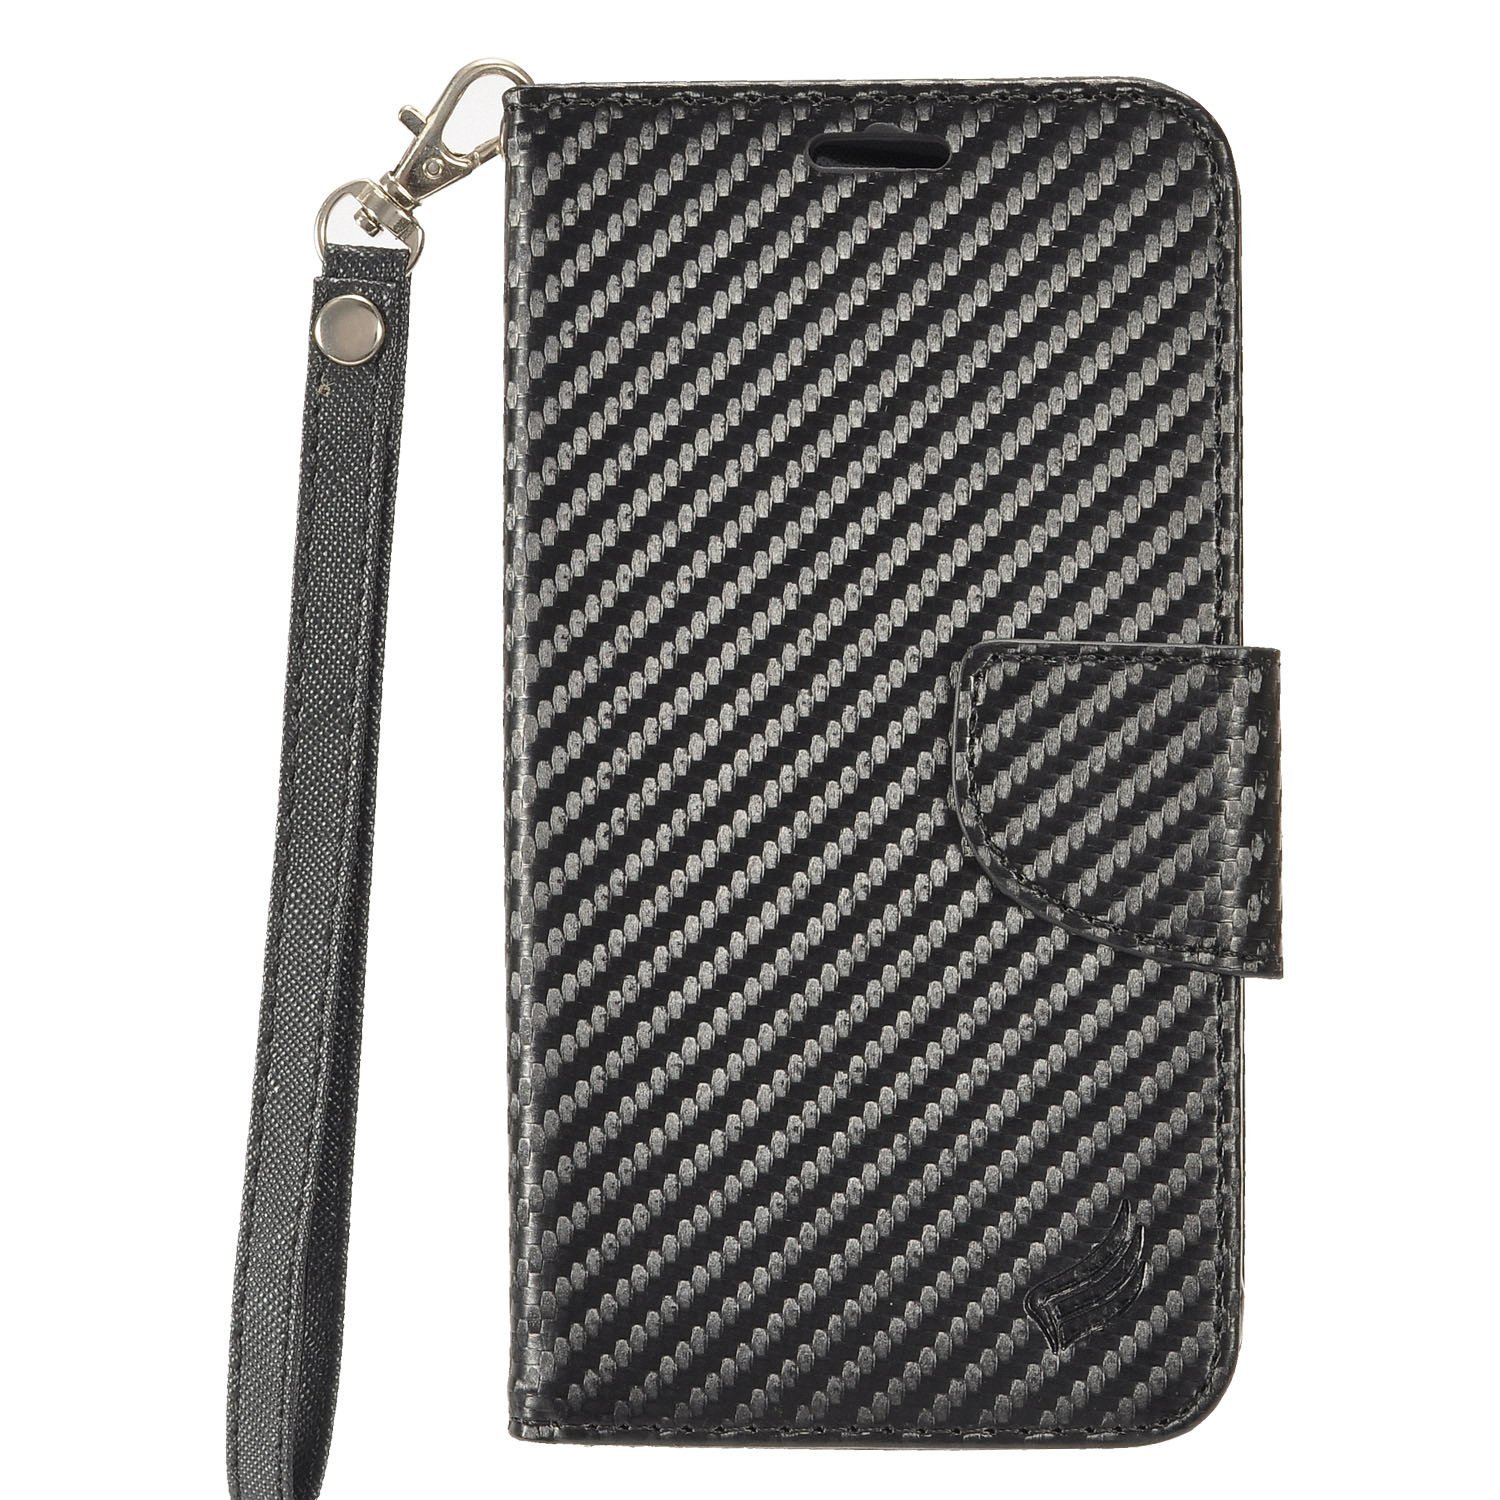 For HTC Bolt - PU Leather Flip Wallet Case + Z-GEN [TM] Stylus Pen - Carbon Fiber/Black